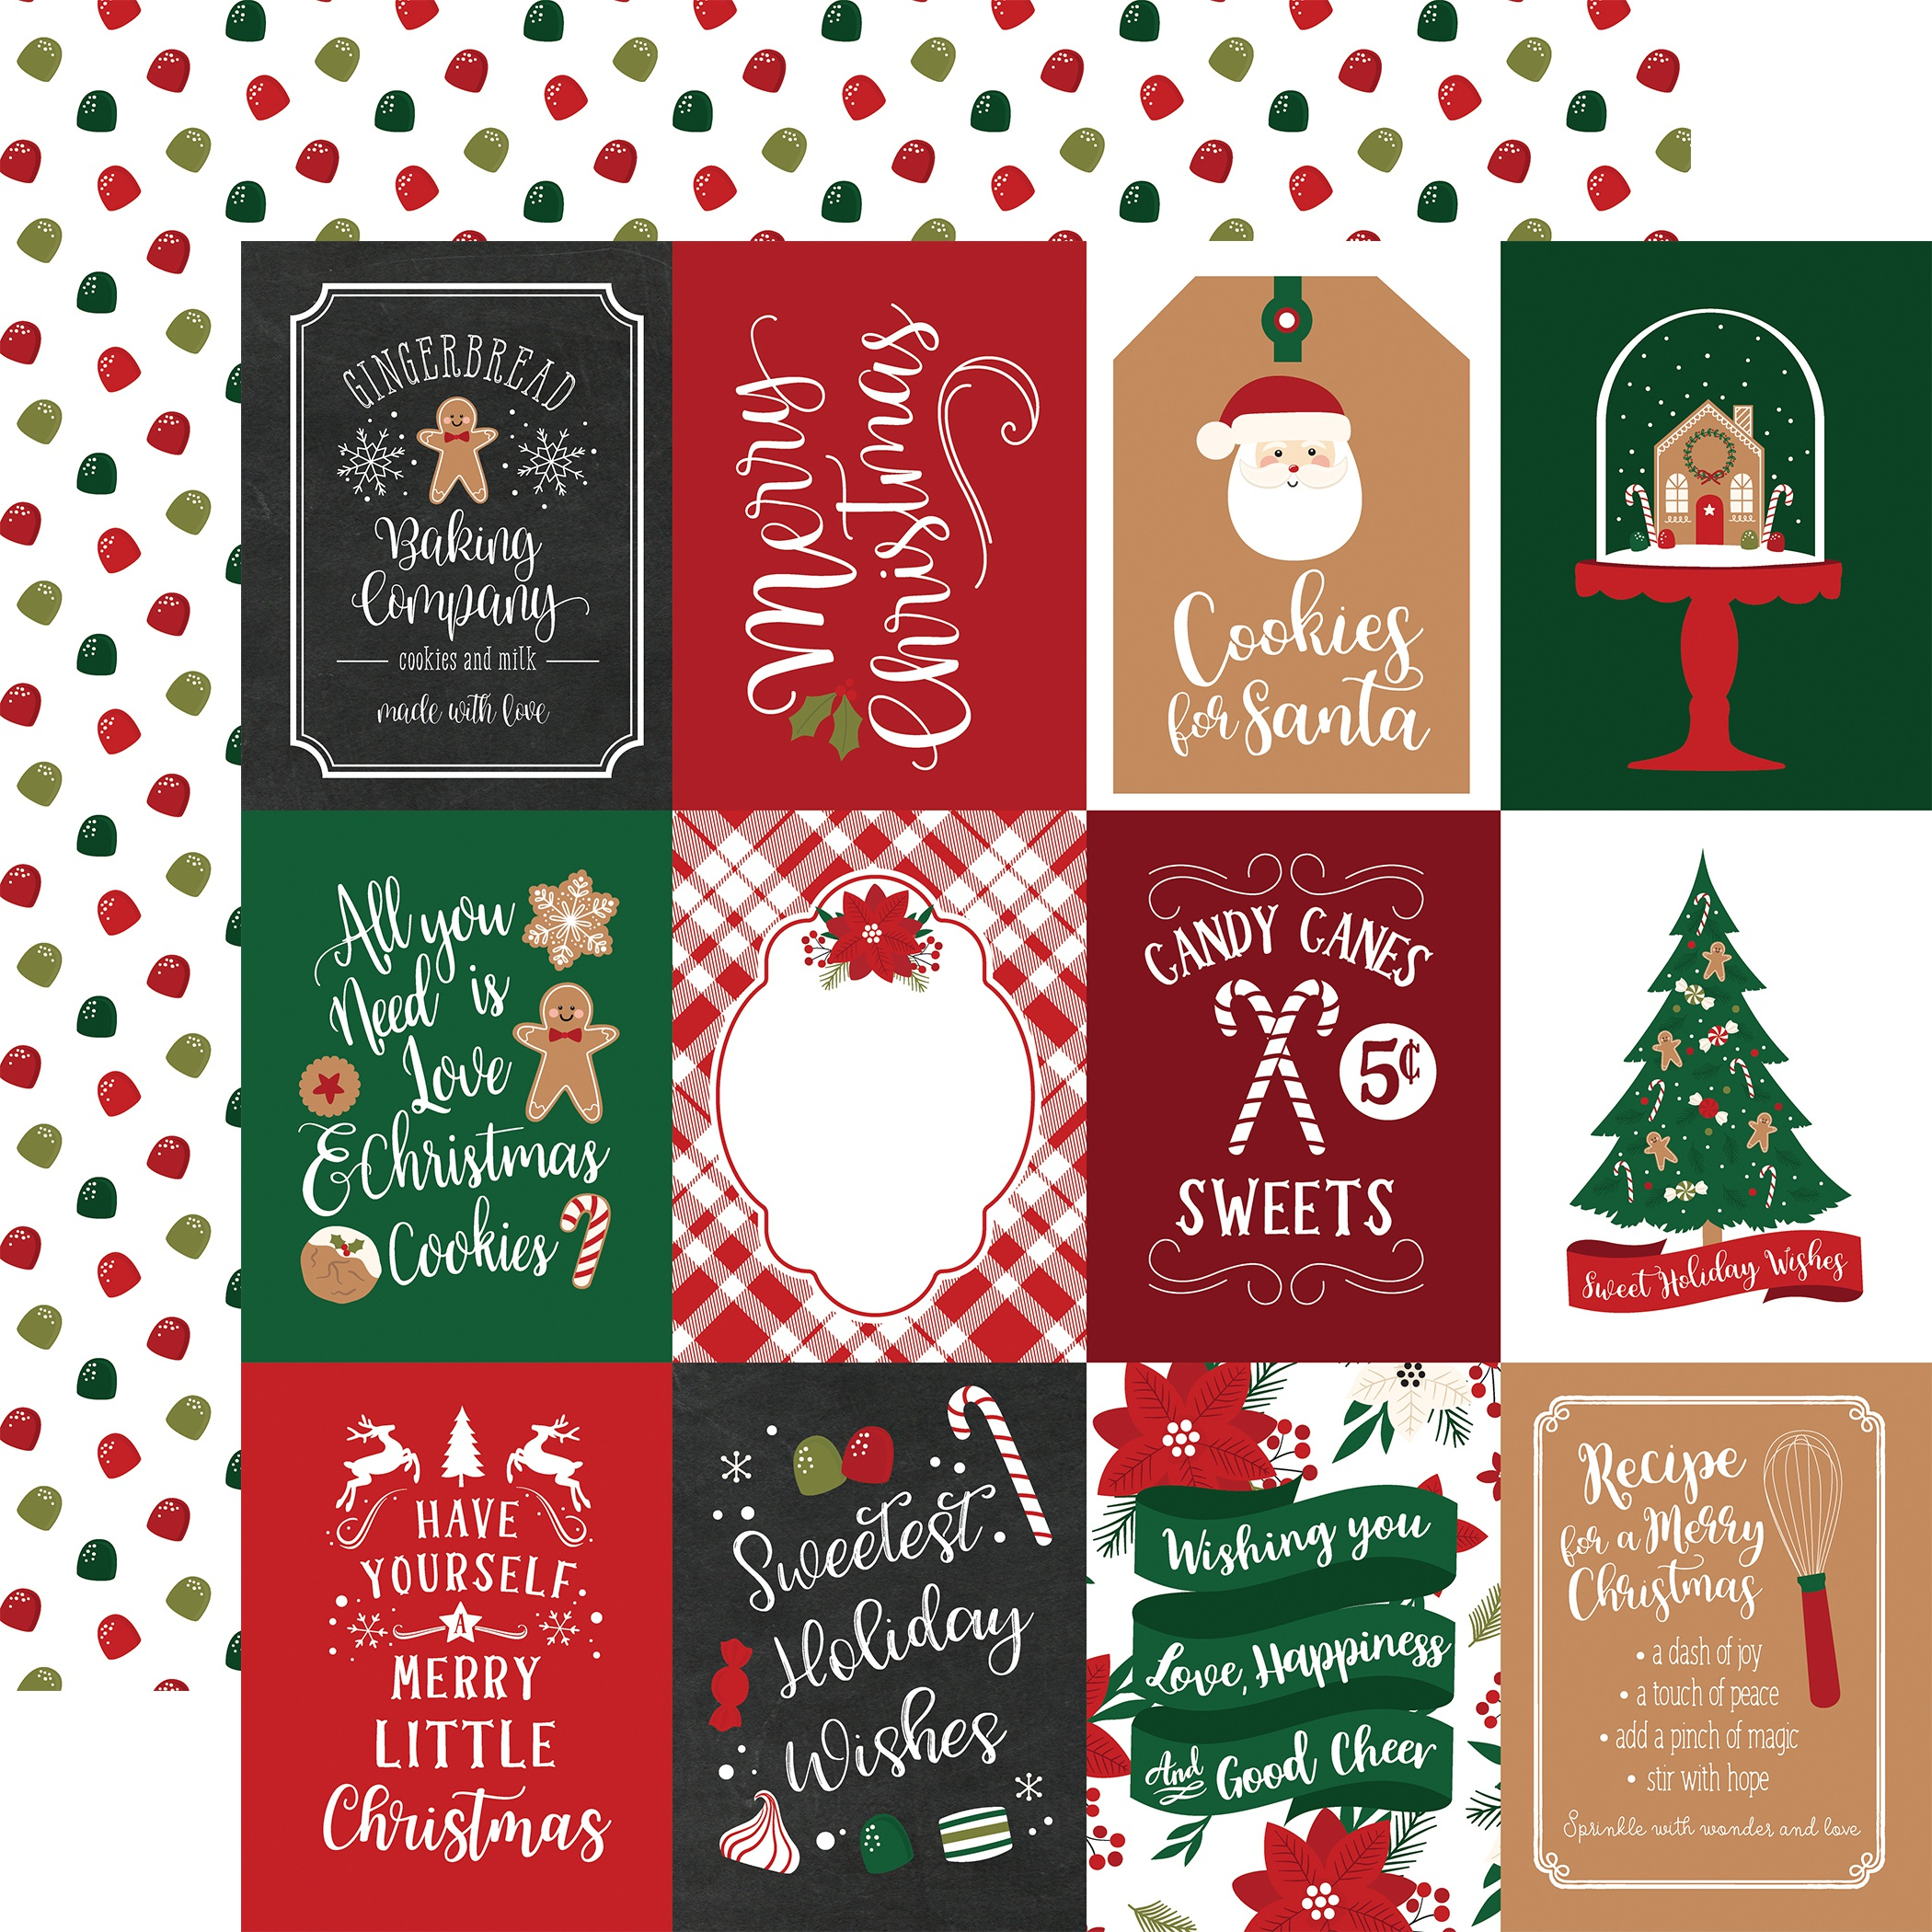 A Gingerbread Christmas Cardstock 12X12- All Styles